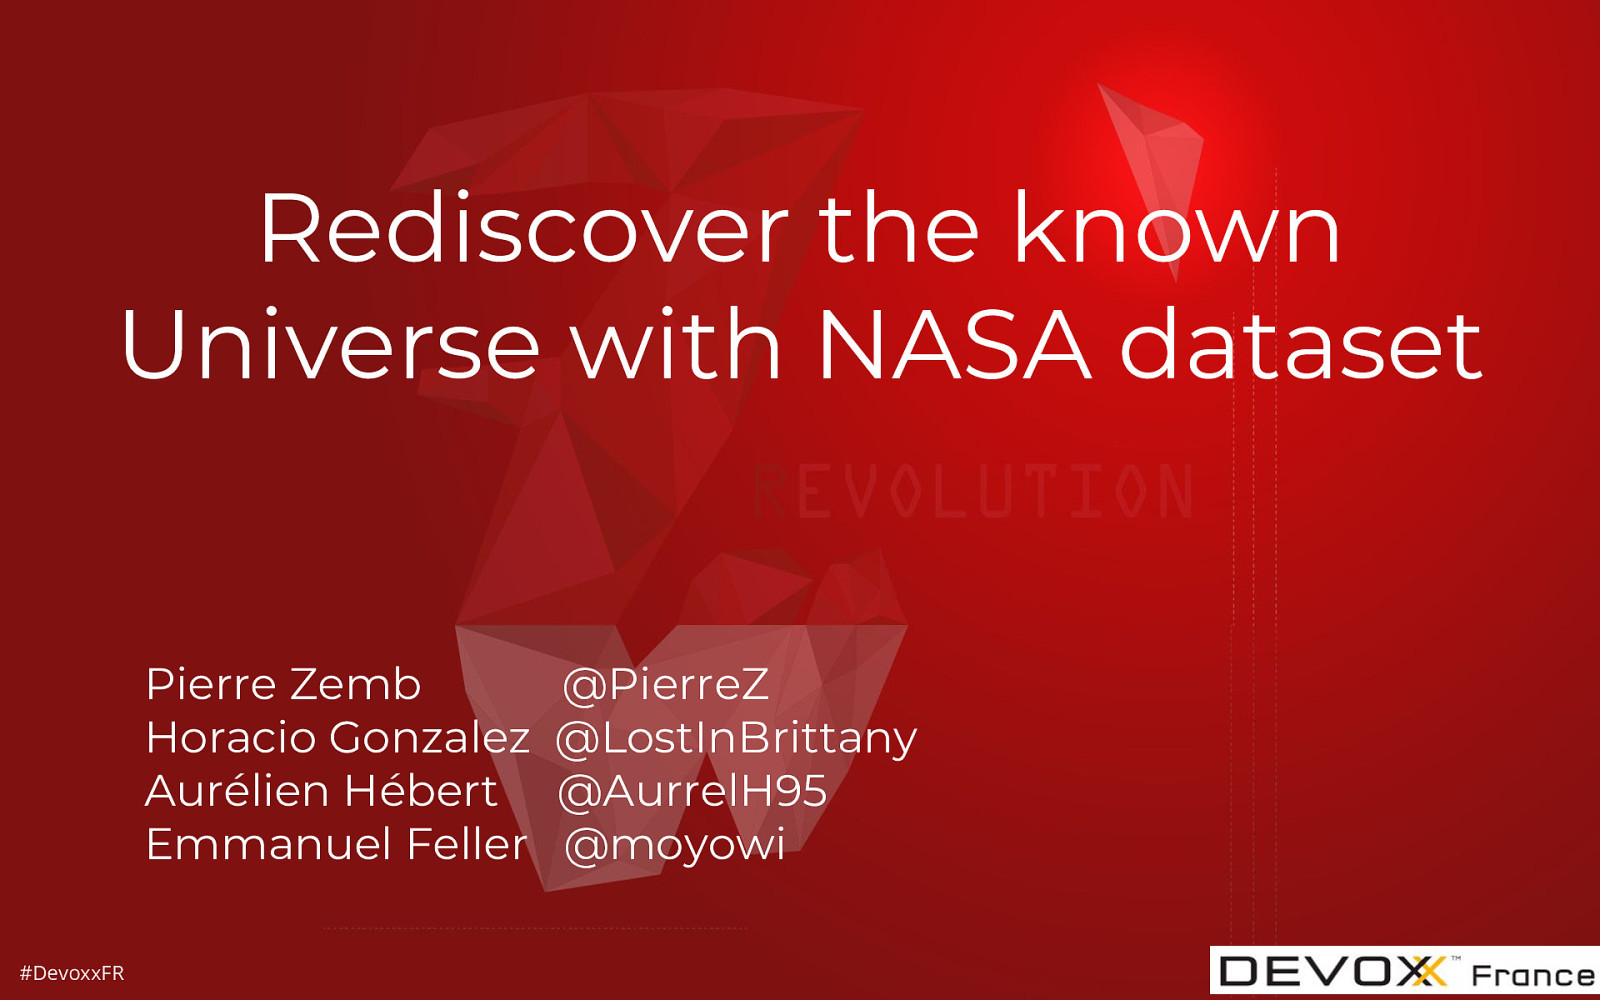 Rediscover the known Universe with NASA dataset